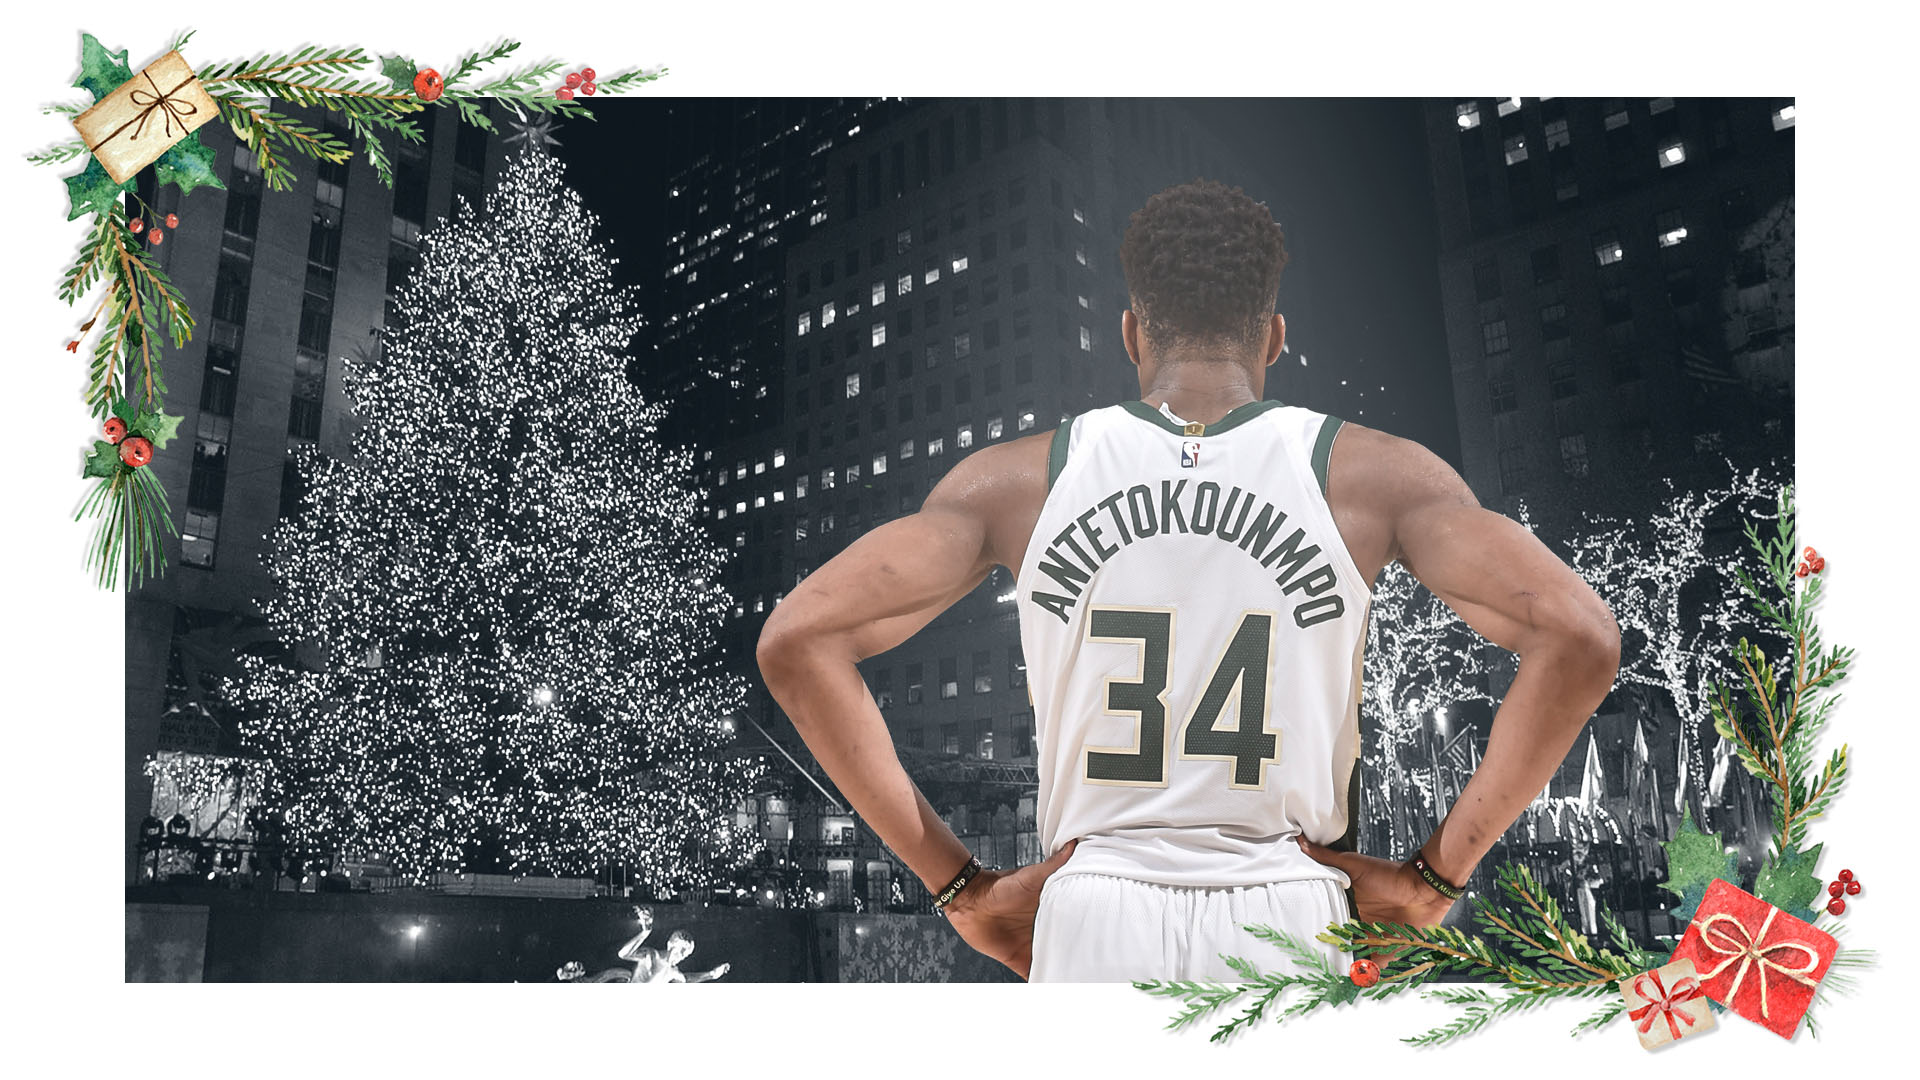 Giannis Antetokounmpo, an MVP candidate this season, will make his Christmas Day debut in the sixth season of his career.